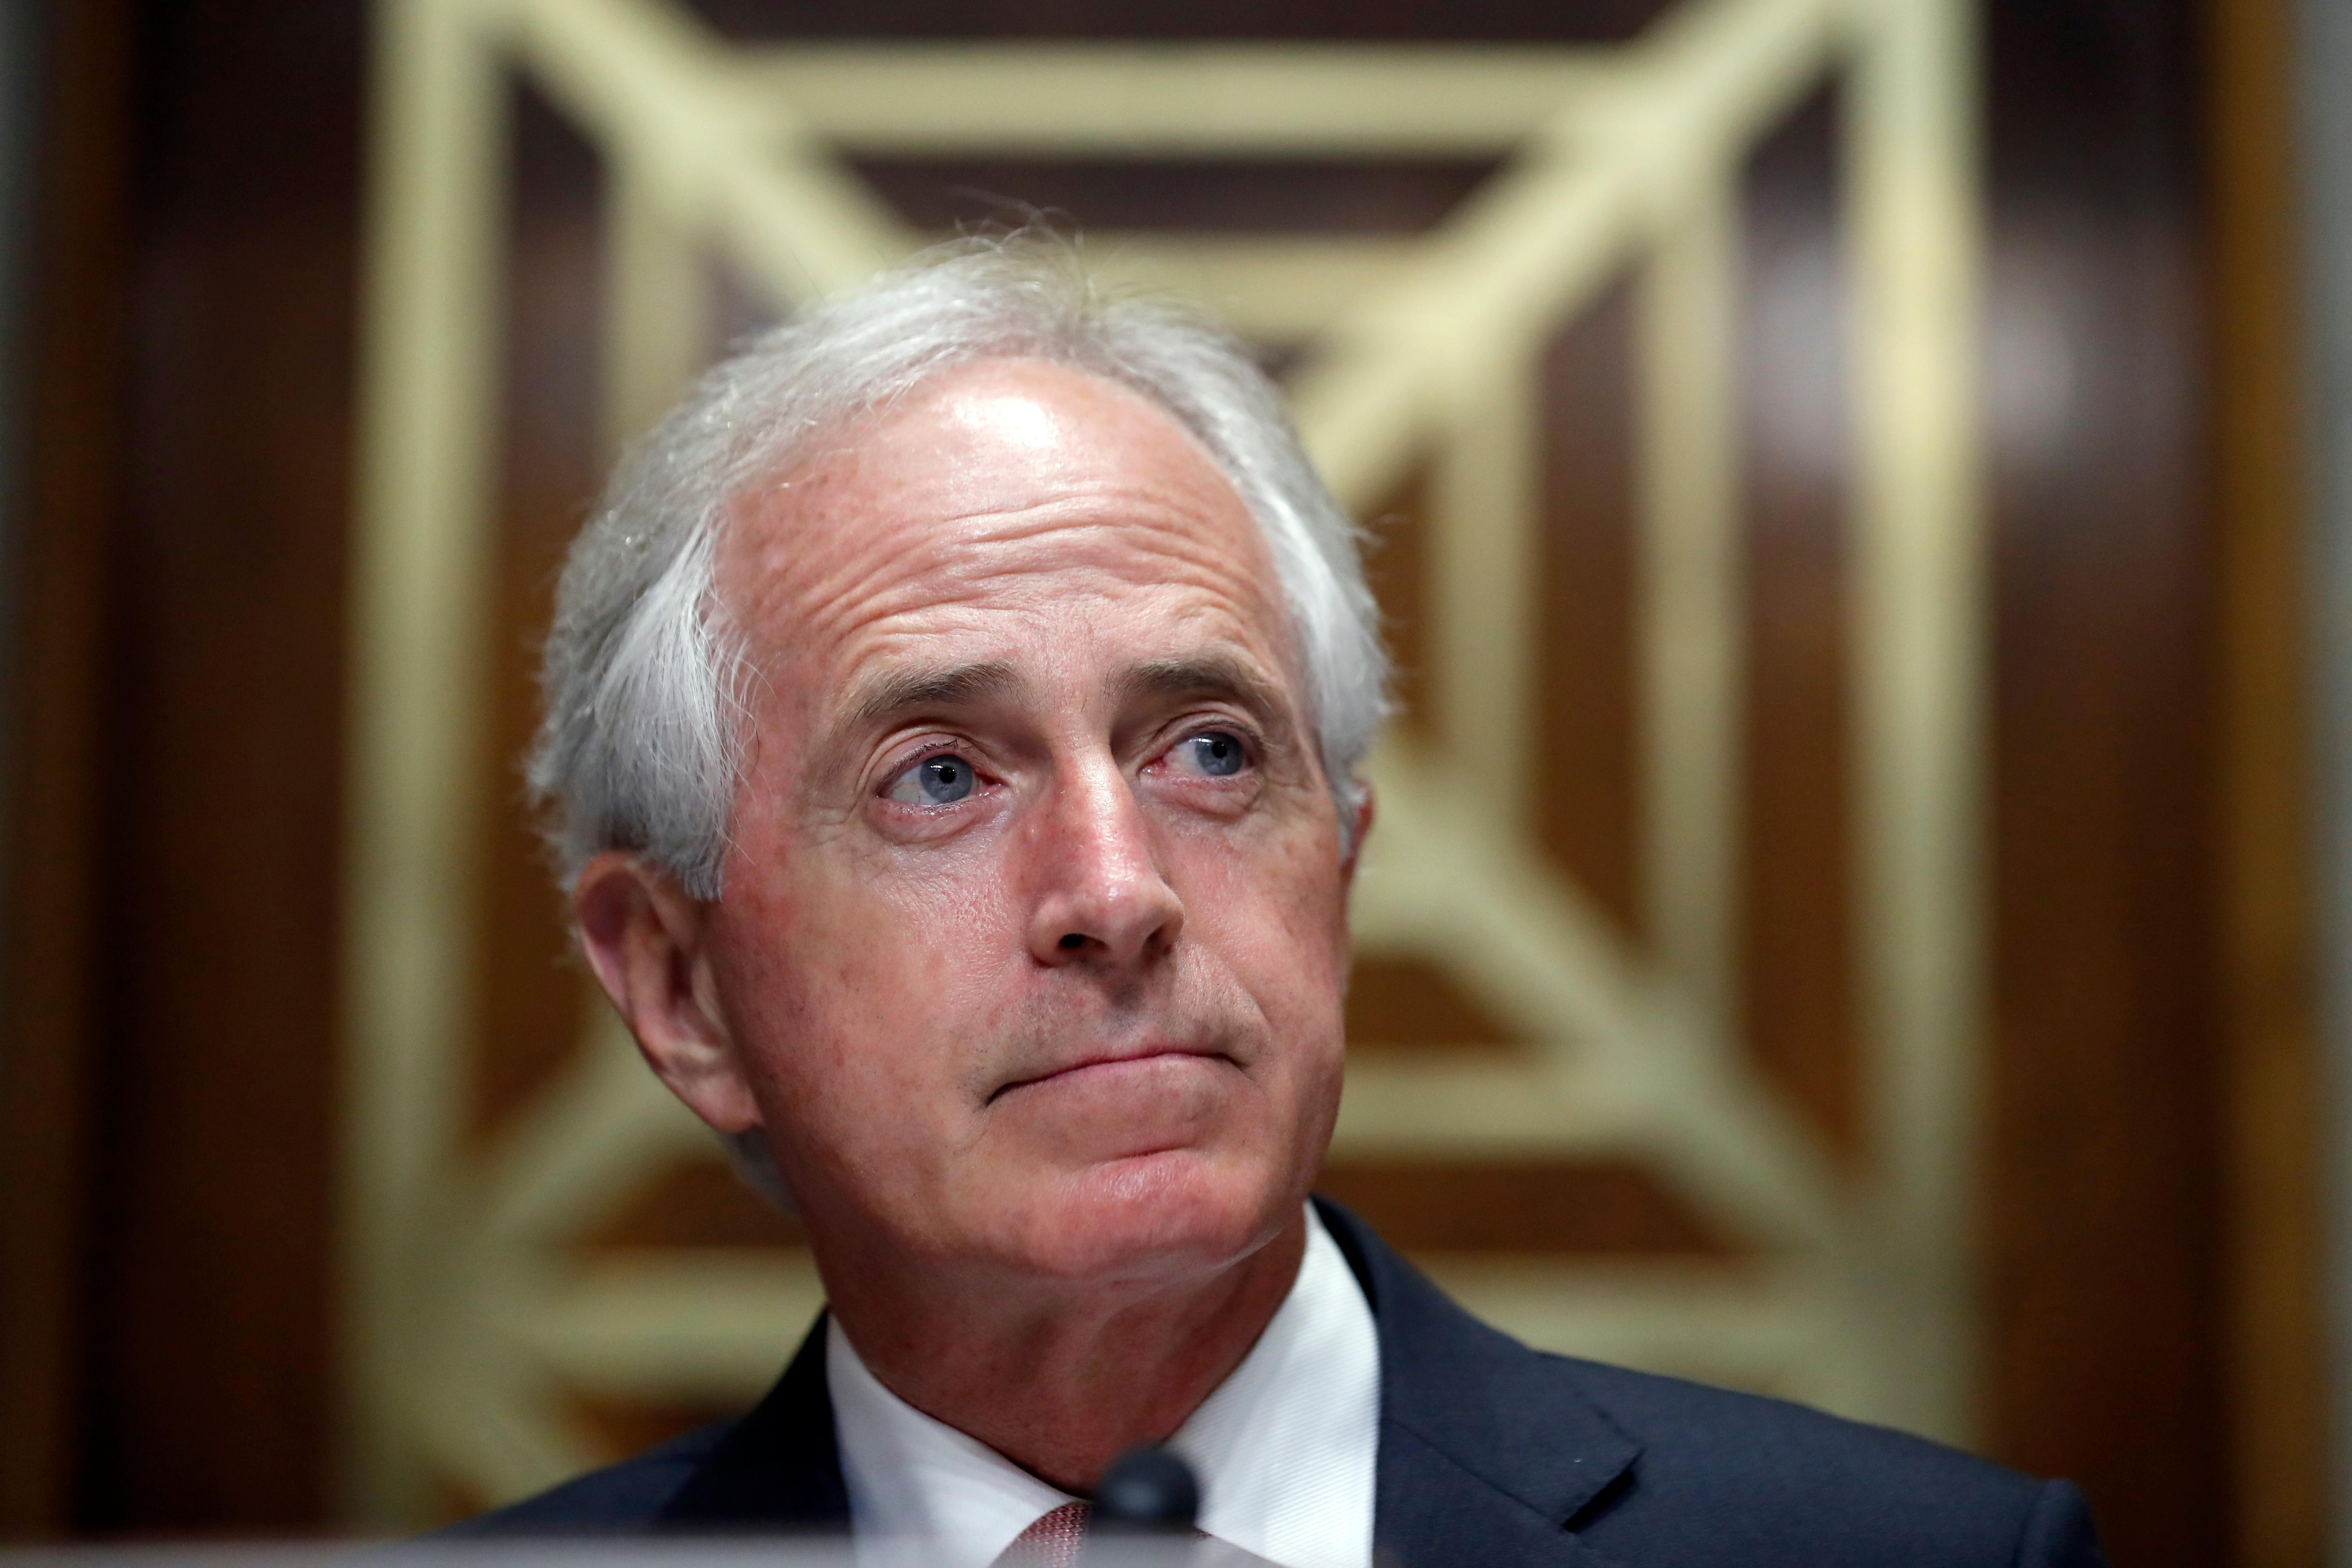 In this Sept. 19, 2017, photo, Sen. Bob Corker, R-Tenn., pauses on Capitol Hill in Washington. Congressional Republicans who've demanded a bigger say in how the Iran nuclear agreement works are getting just what they want after President Donald Trump directed lawmakers to make the international accord more stringent. Corker, the Foreign Relations Committee chairman, will be at the center of what's sure to be a stormy debate over the nuclear accord. And he's in the midst of a feud with Trump. (AP Photo/Alex Brandon, File)